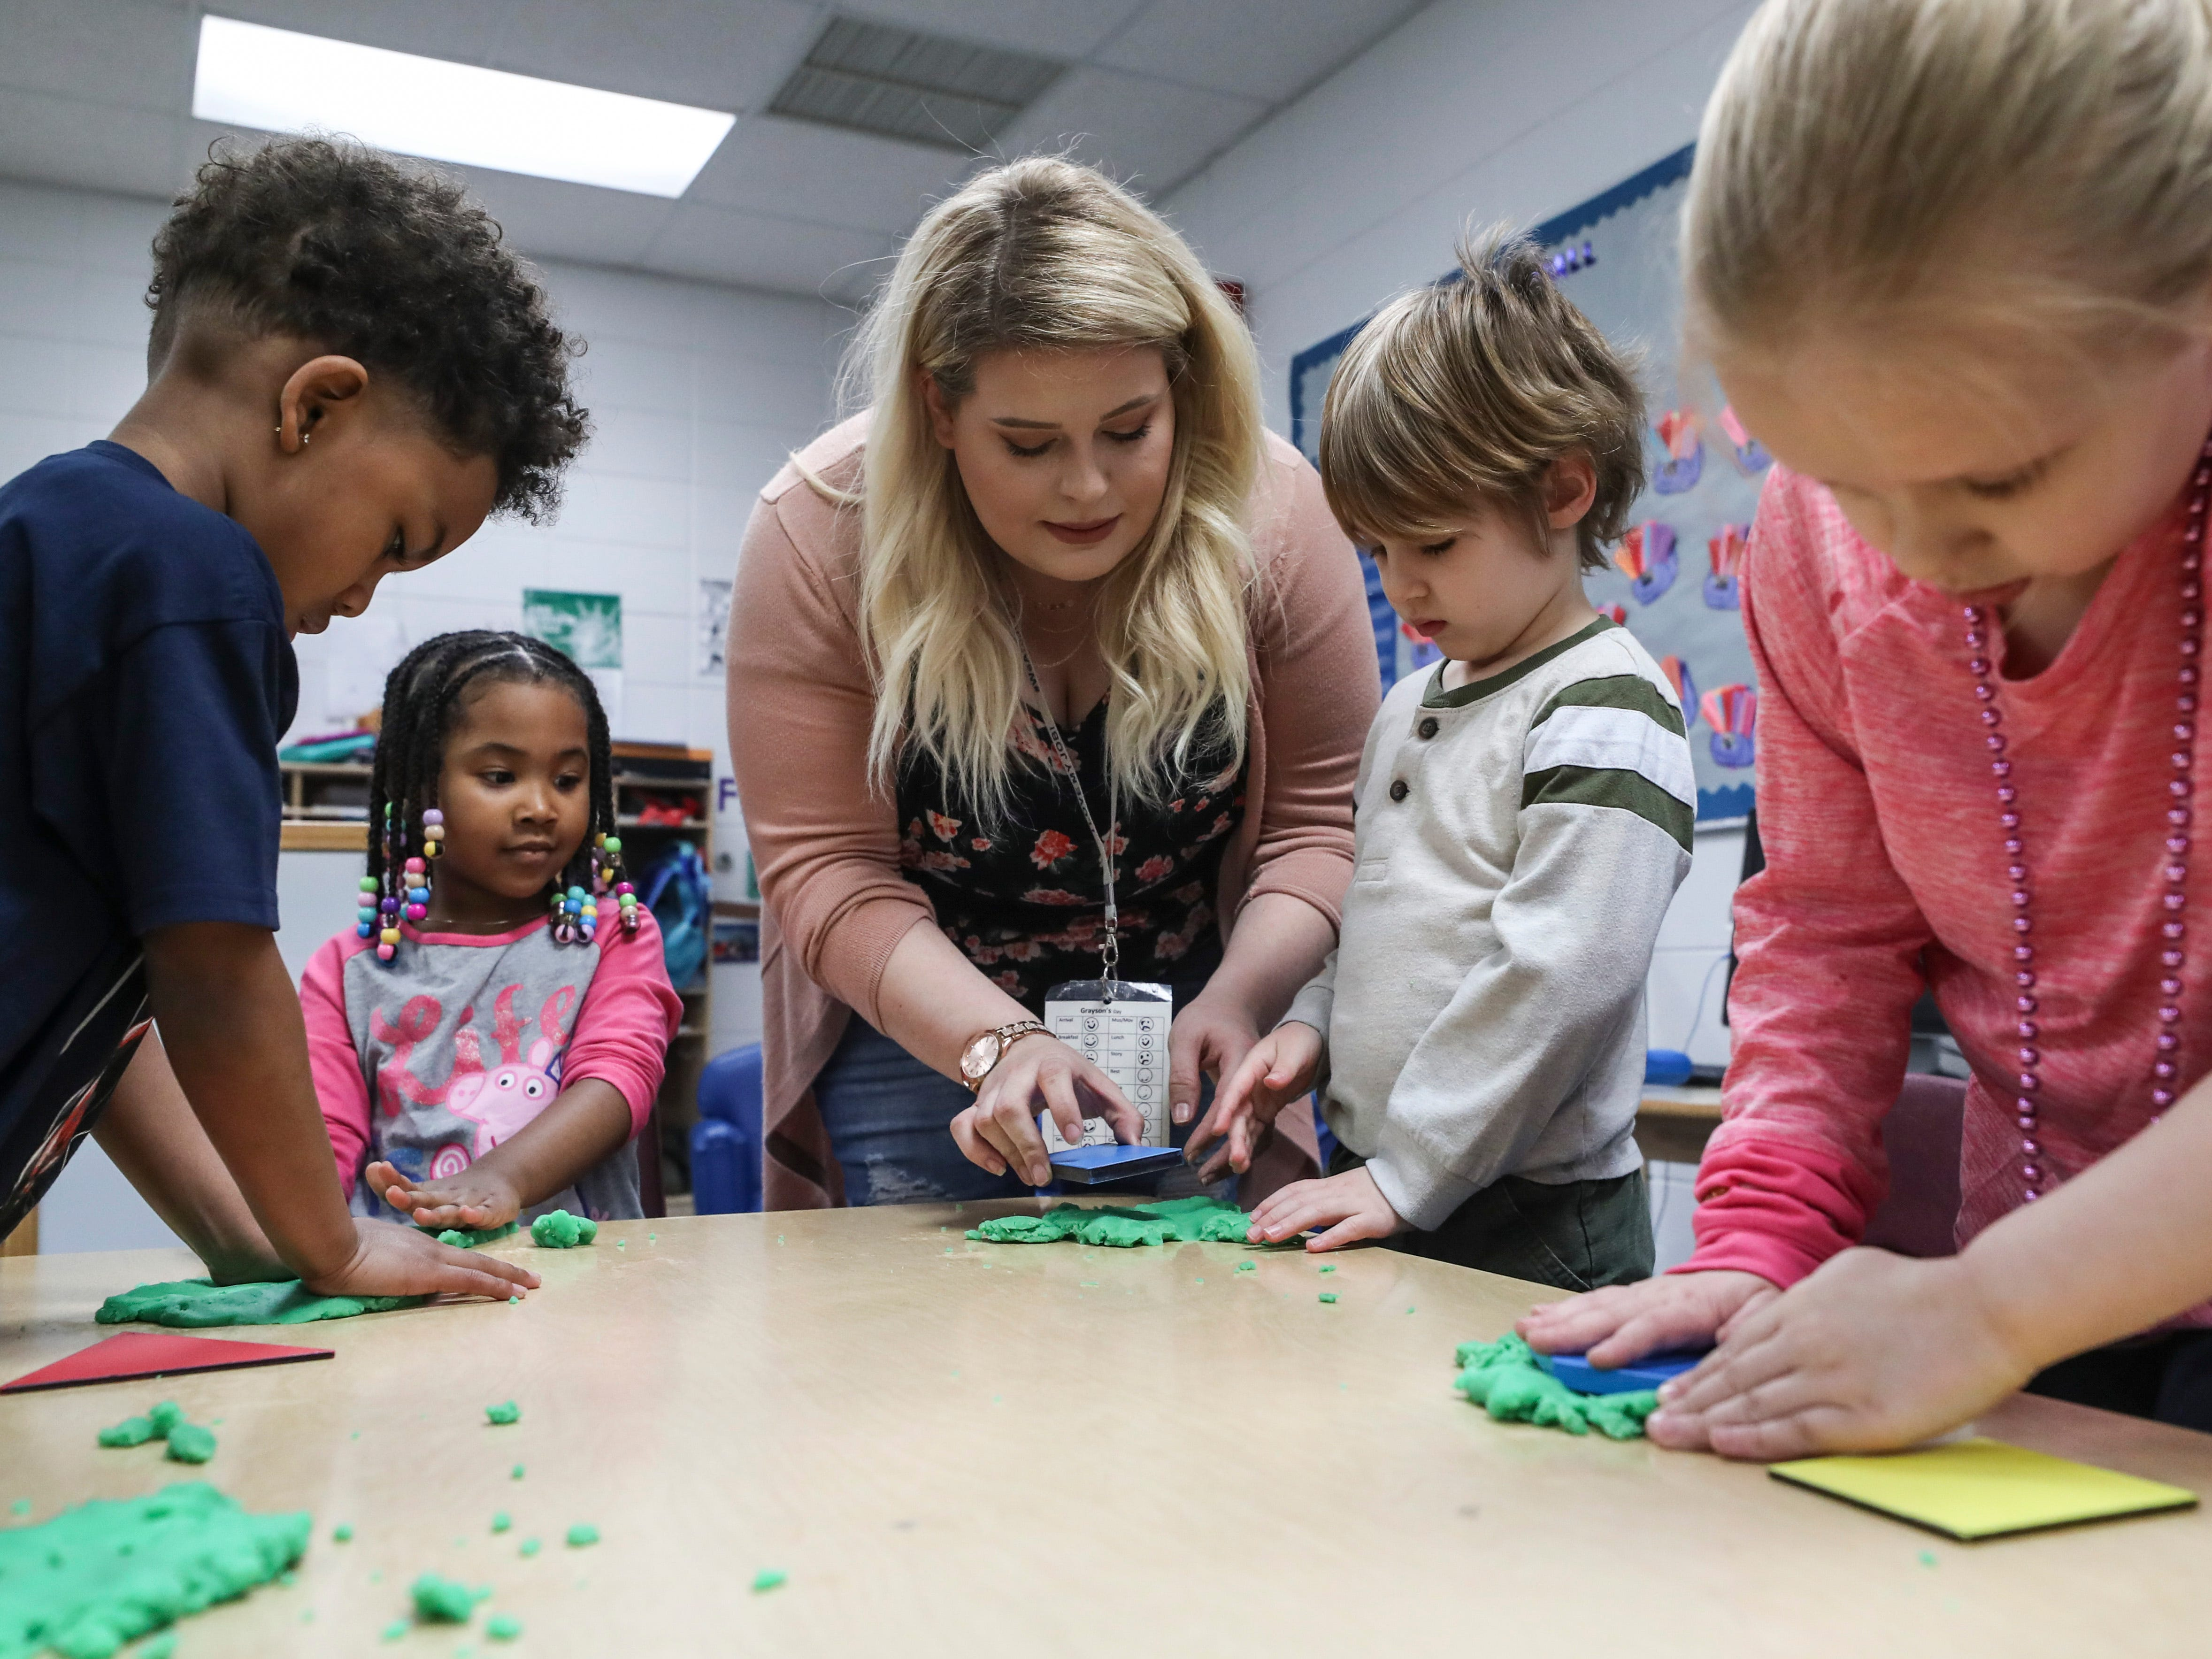 Kayla Hardin, lead teacher, works with some of her prekindergarten students at the Westport Early Childhood Center recently.